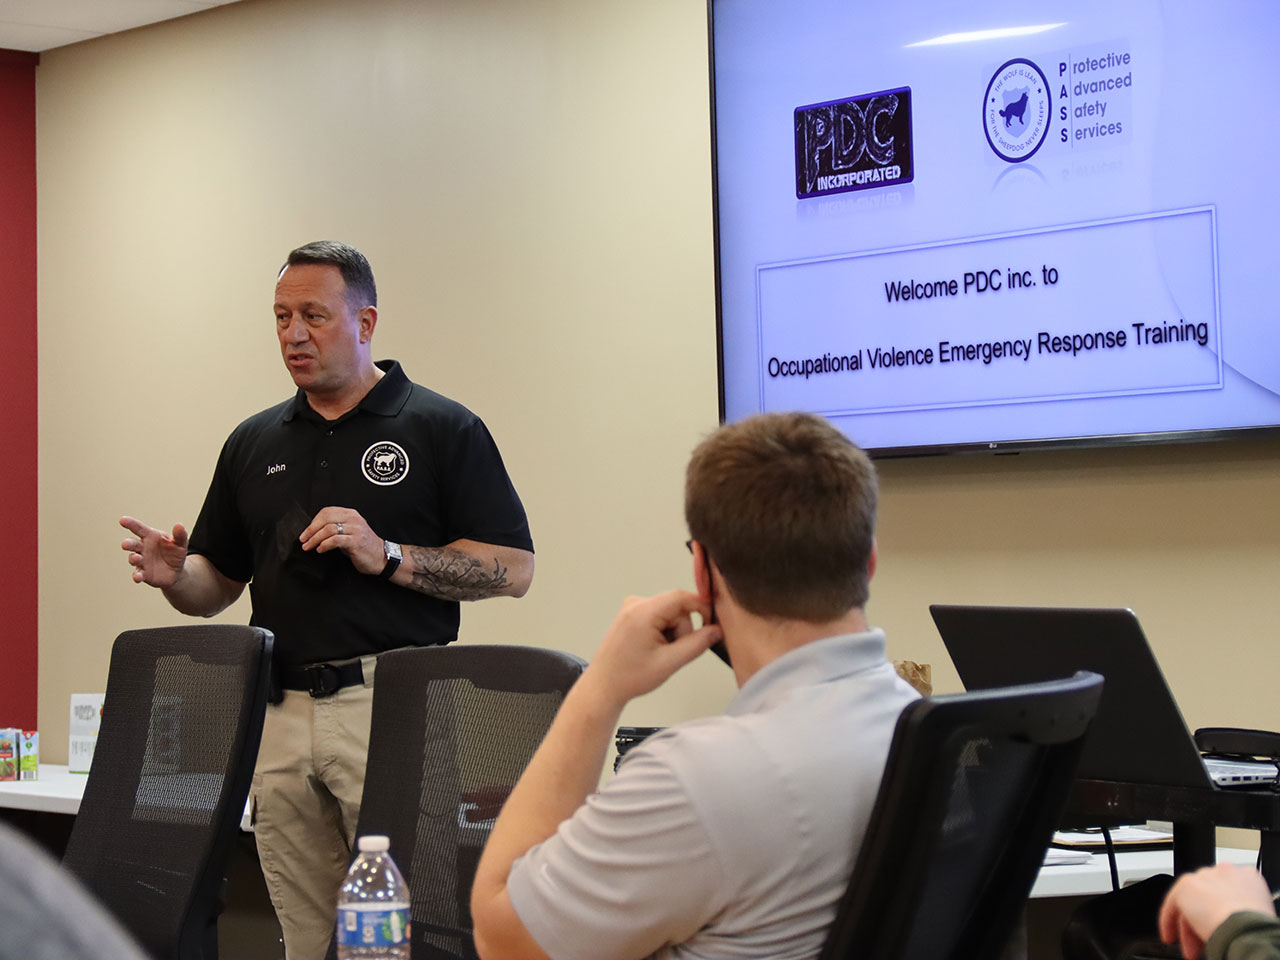 PASS active shooter presentation in Springfield business